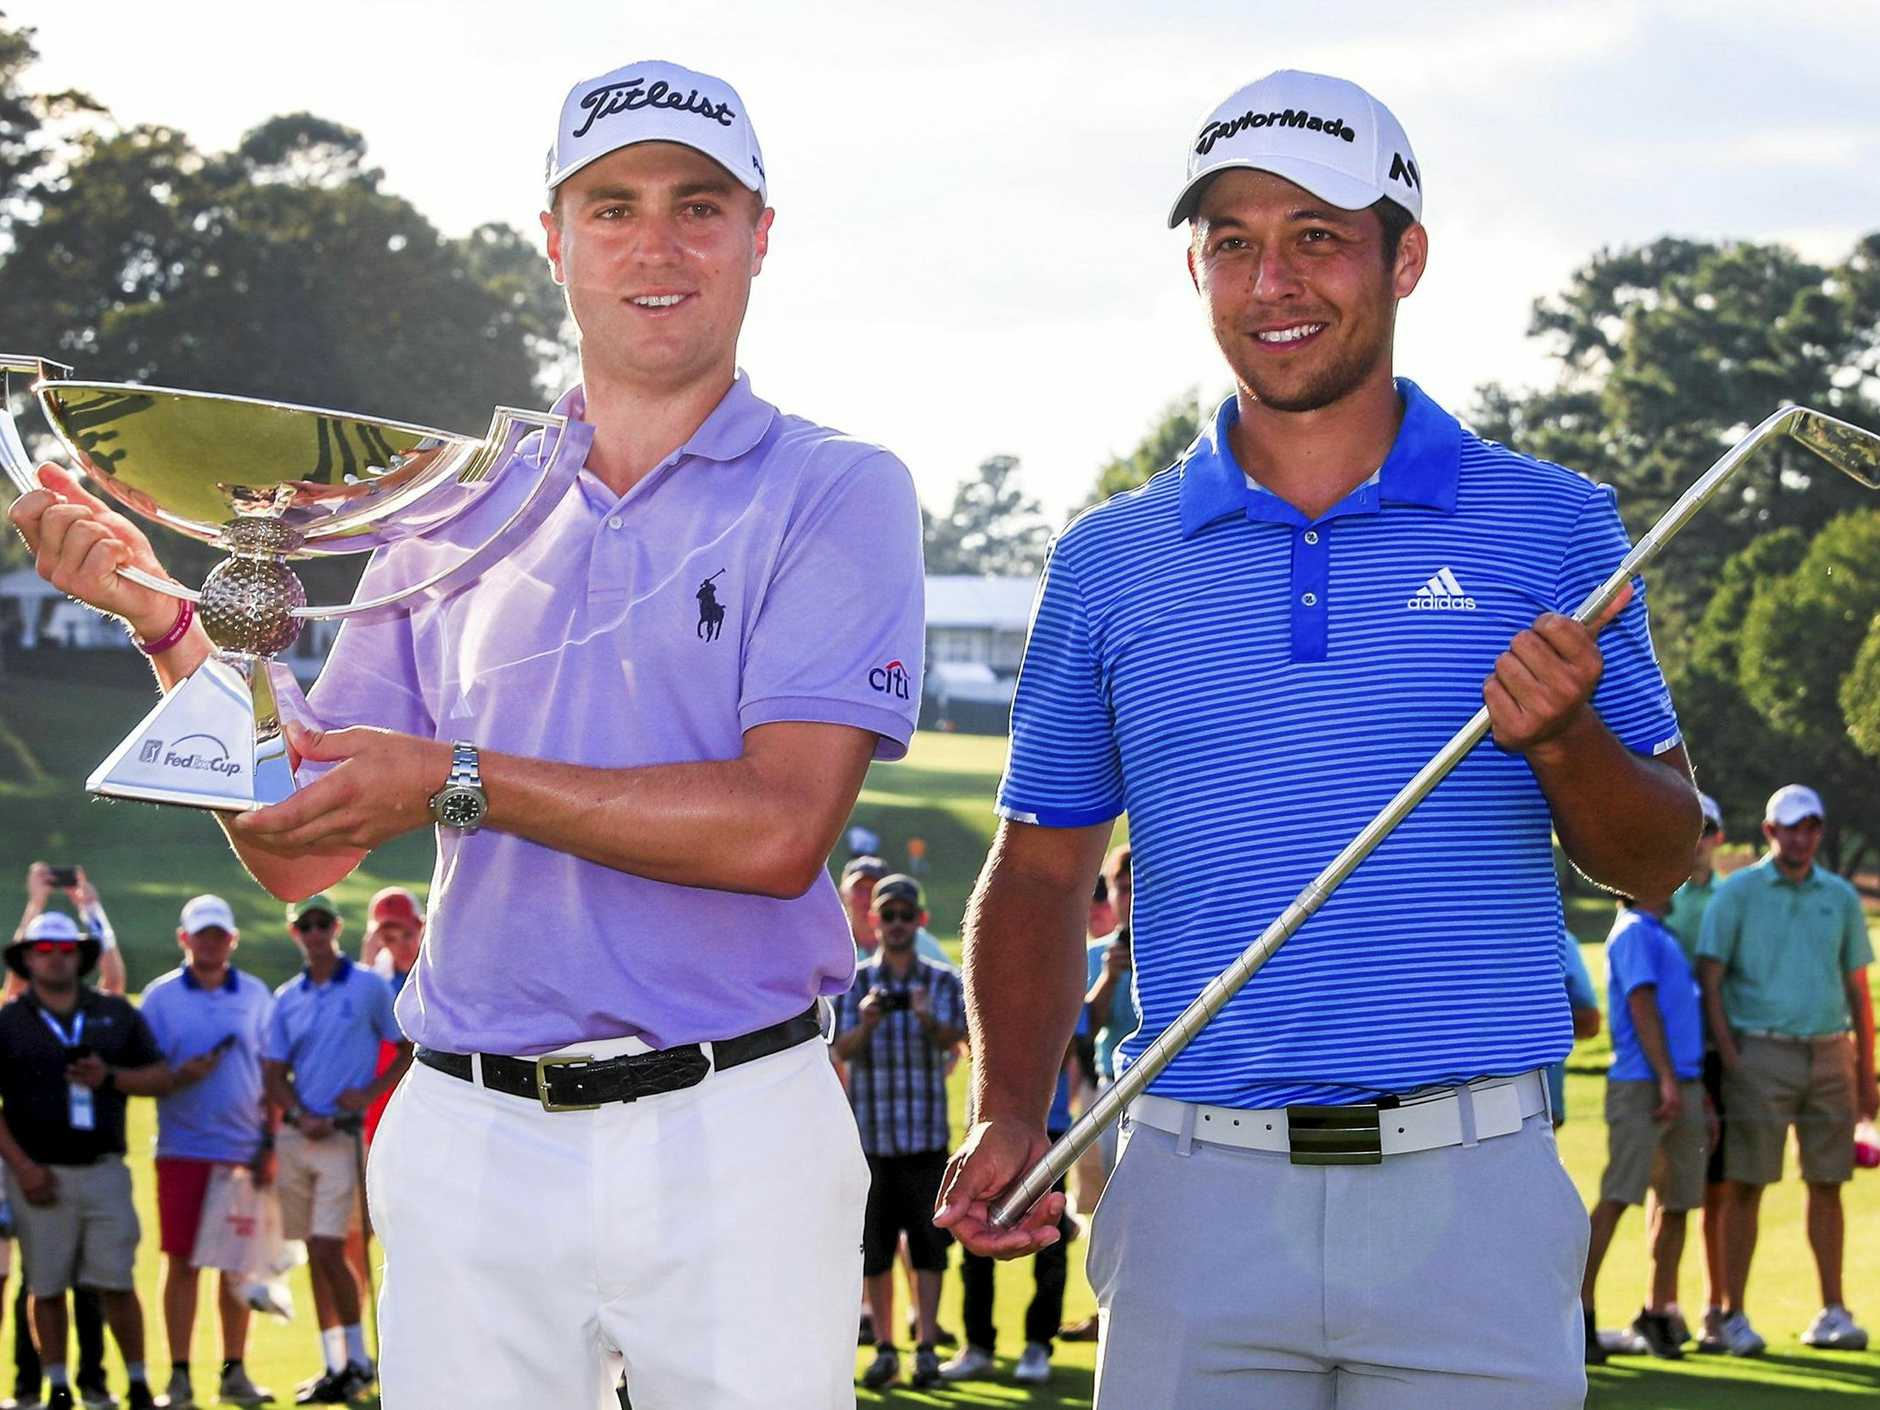 Justin Thomas shows of the FedEx Cup and Xander Schauffele (right) of the Tour Championship trophy after the season-ending tournament in Atlanta.